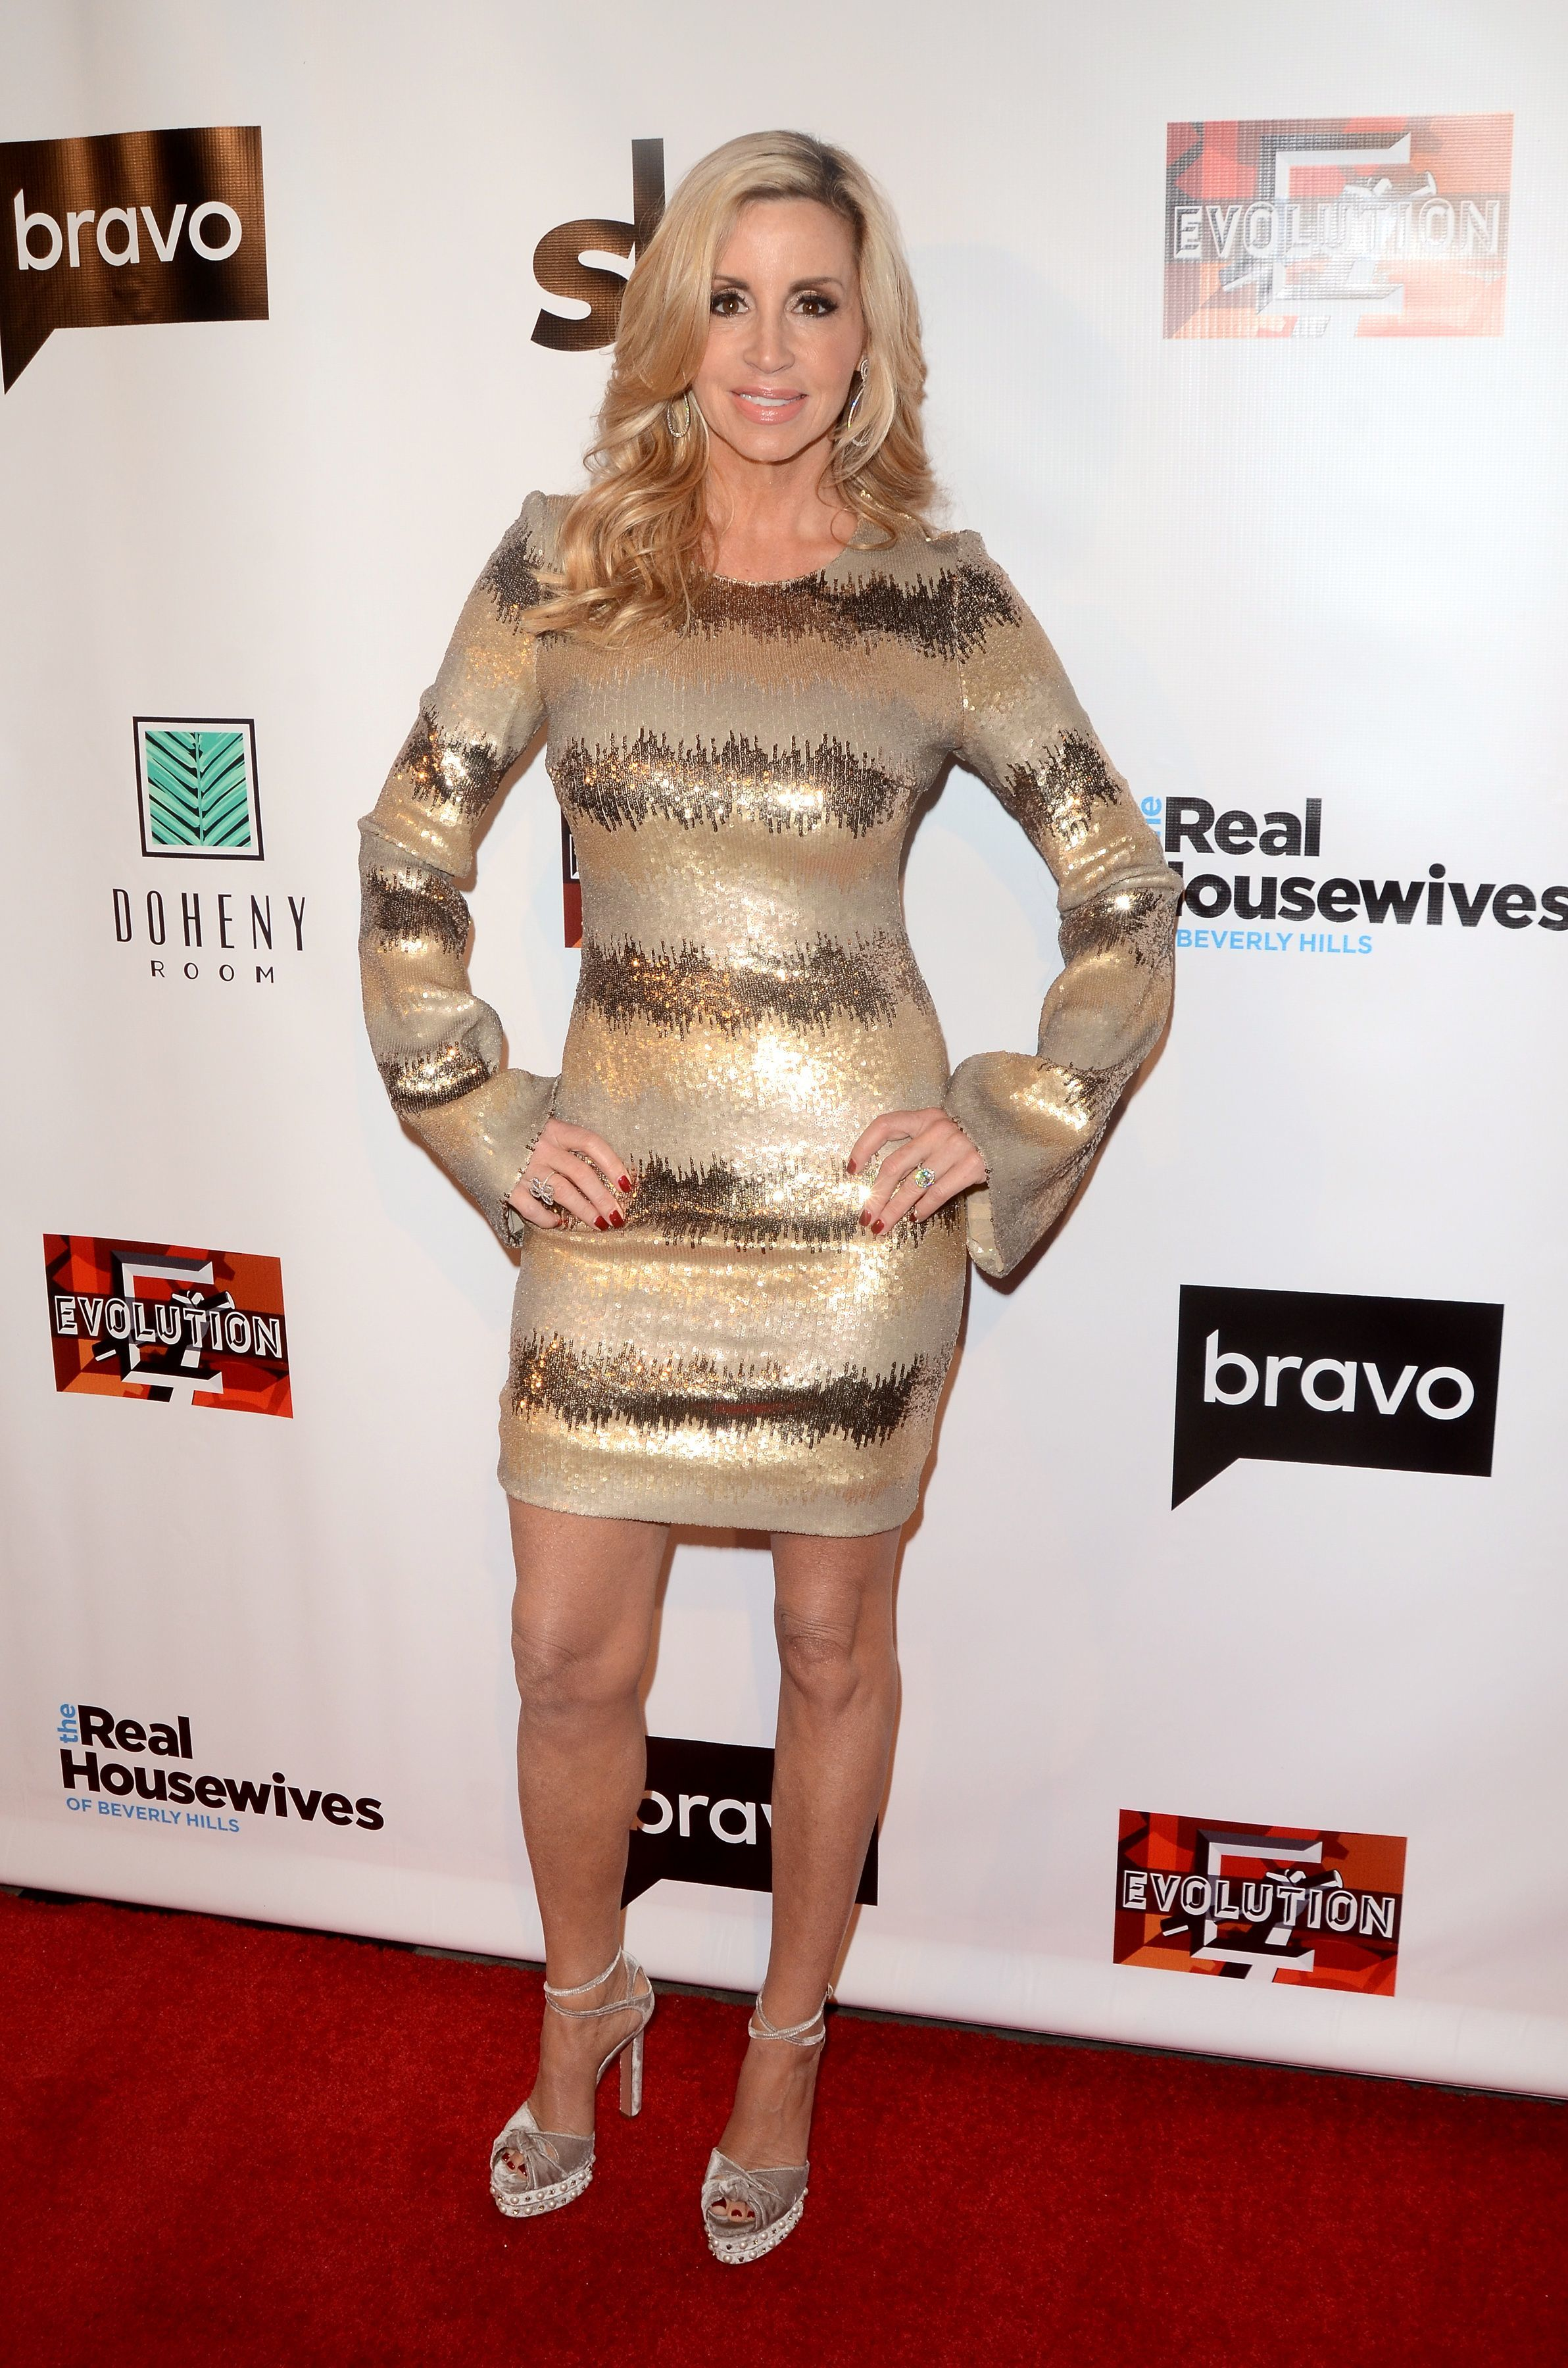 """Camille Grammer attends """"The Real Housewives of Beverly Hills"""" TV Show Season 8 premiere in Los Angeles on Dec. 15, 2017."""